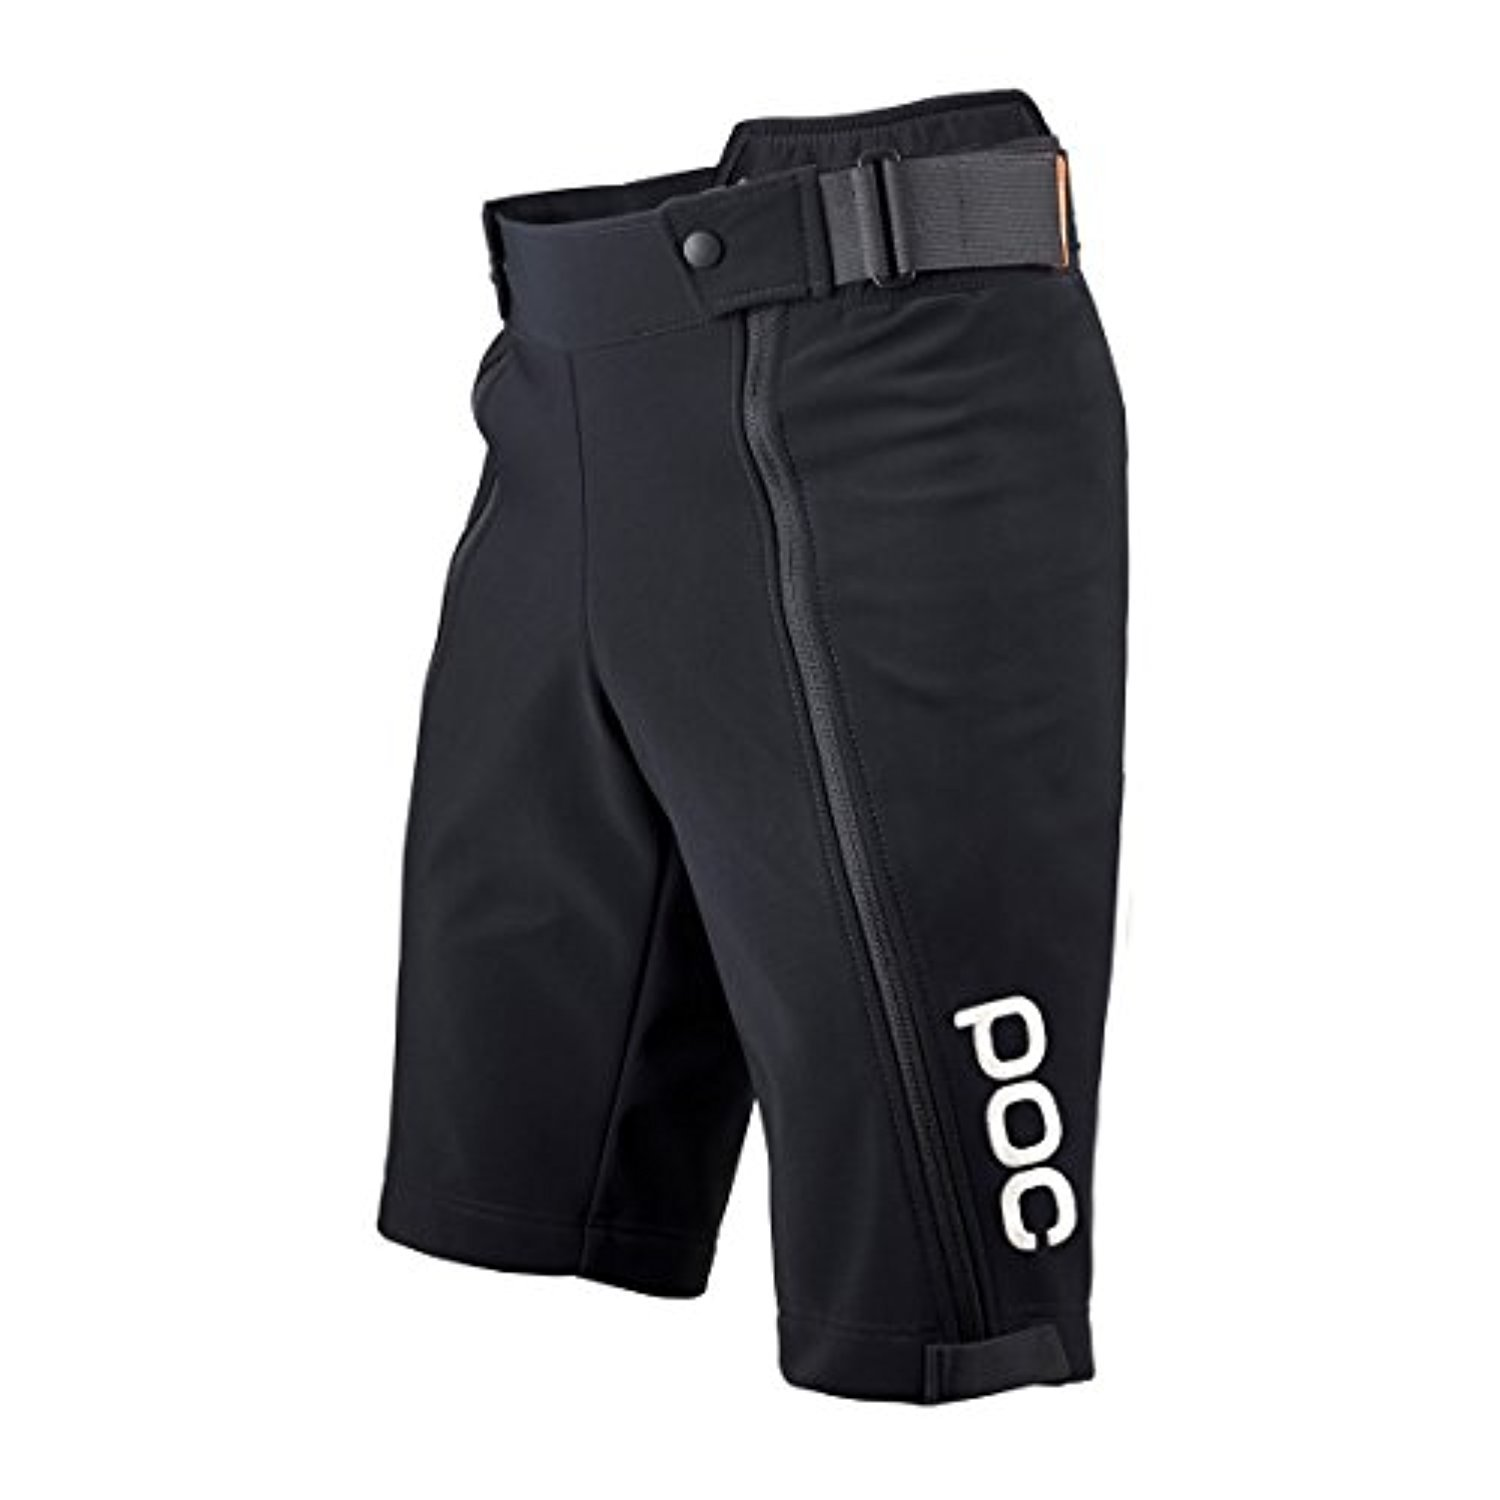 poc Race Shorts Jr. uranium Black 152 & Headband Bundle by POC